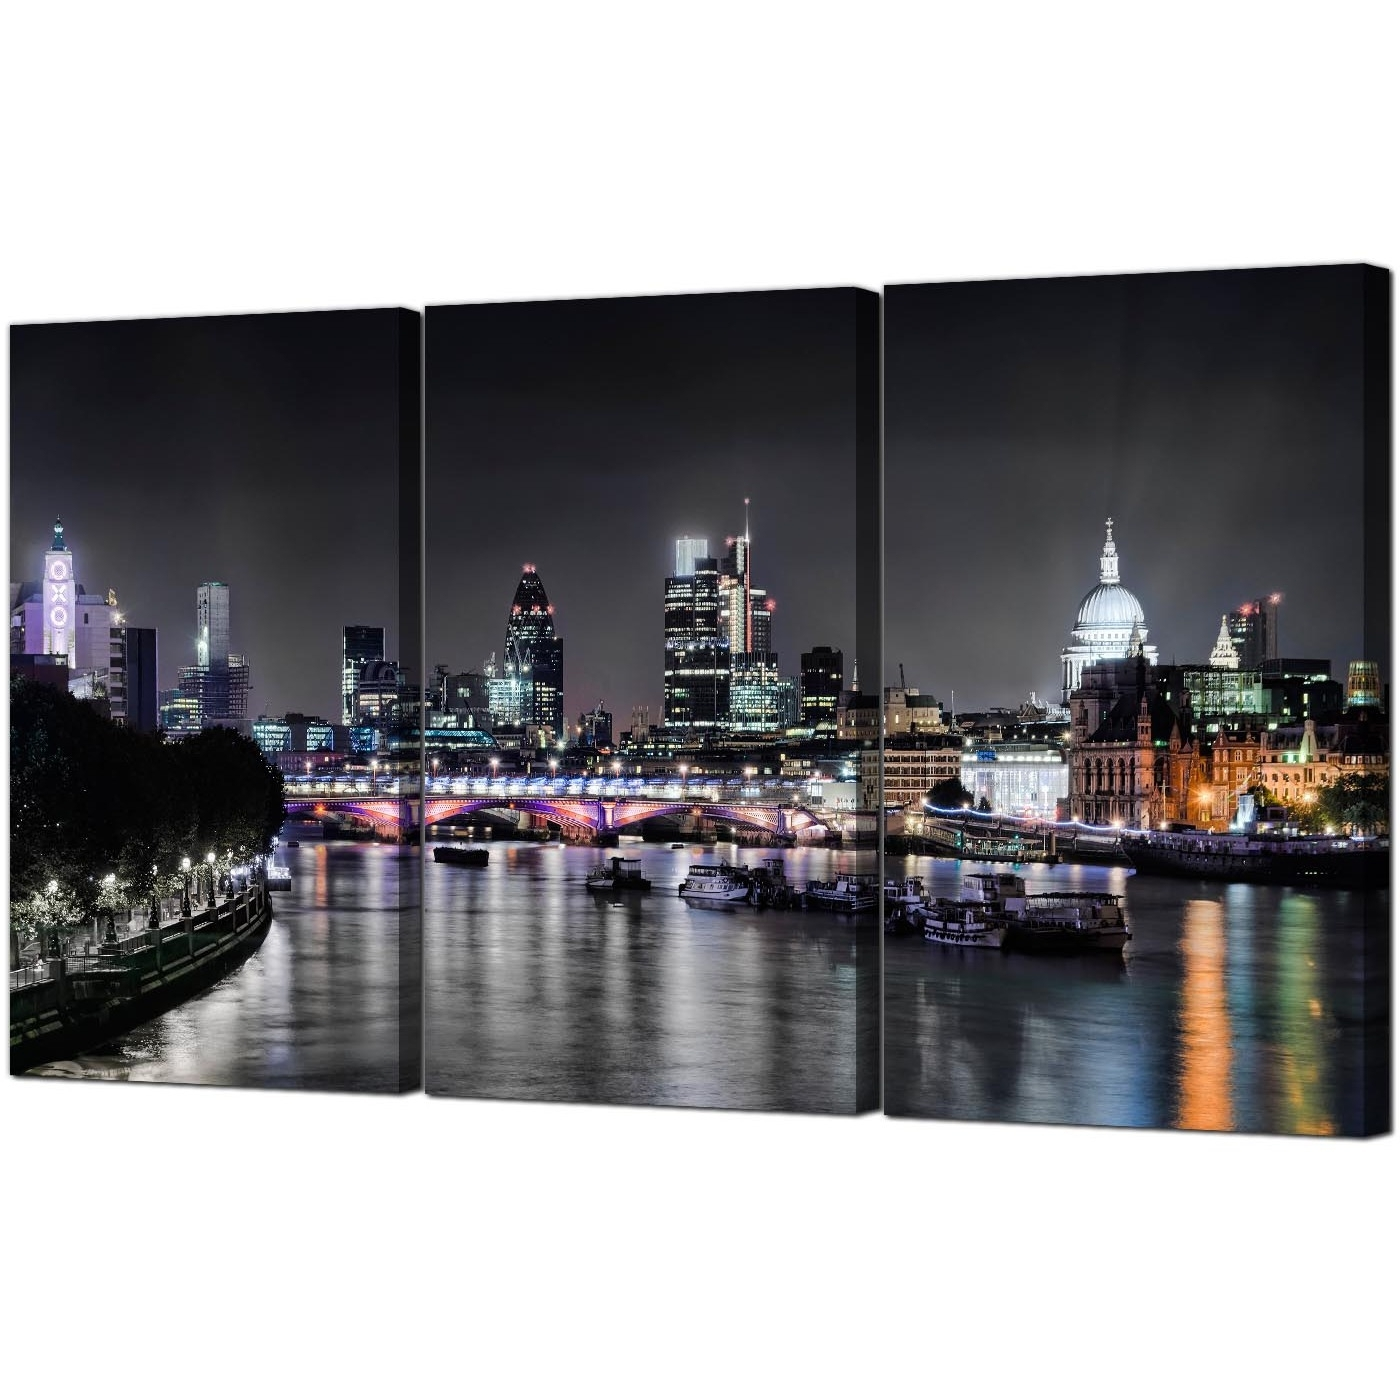 Canvas Wall Art Of London In Trendy Cheap London Skyline At Night Canvas Art 3 Panel For Your Living Room (Gallery 9 of 15)